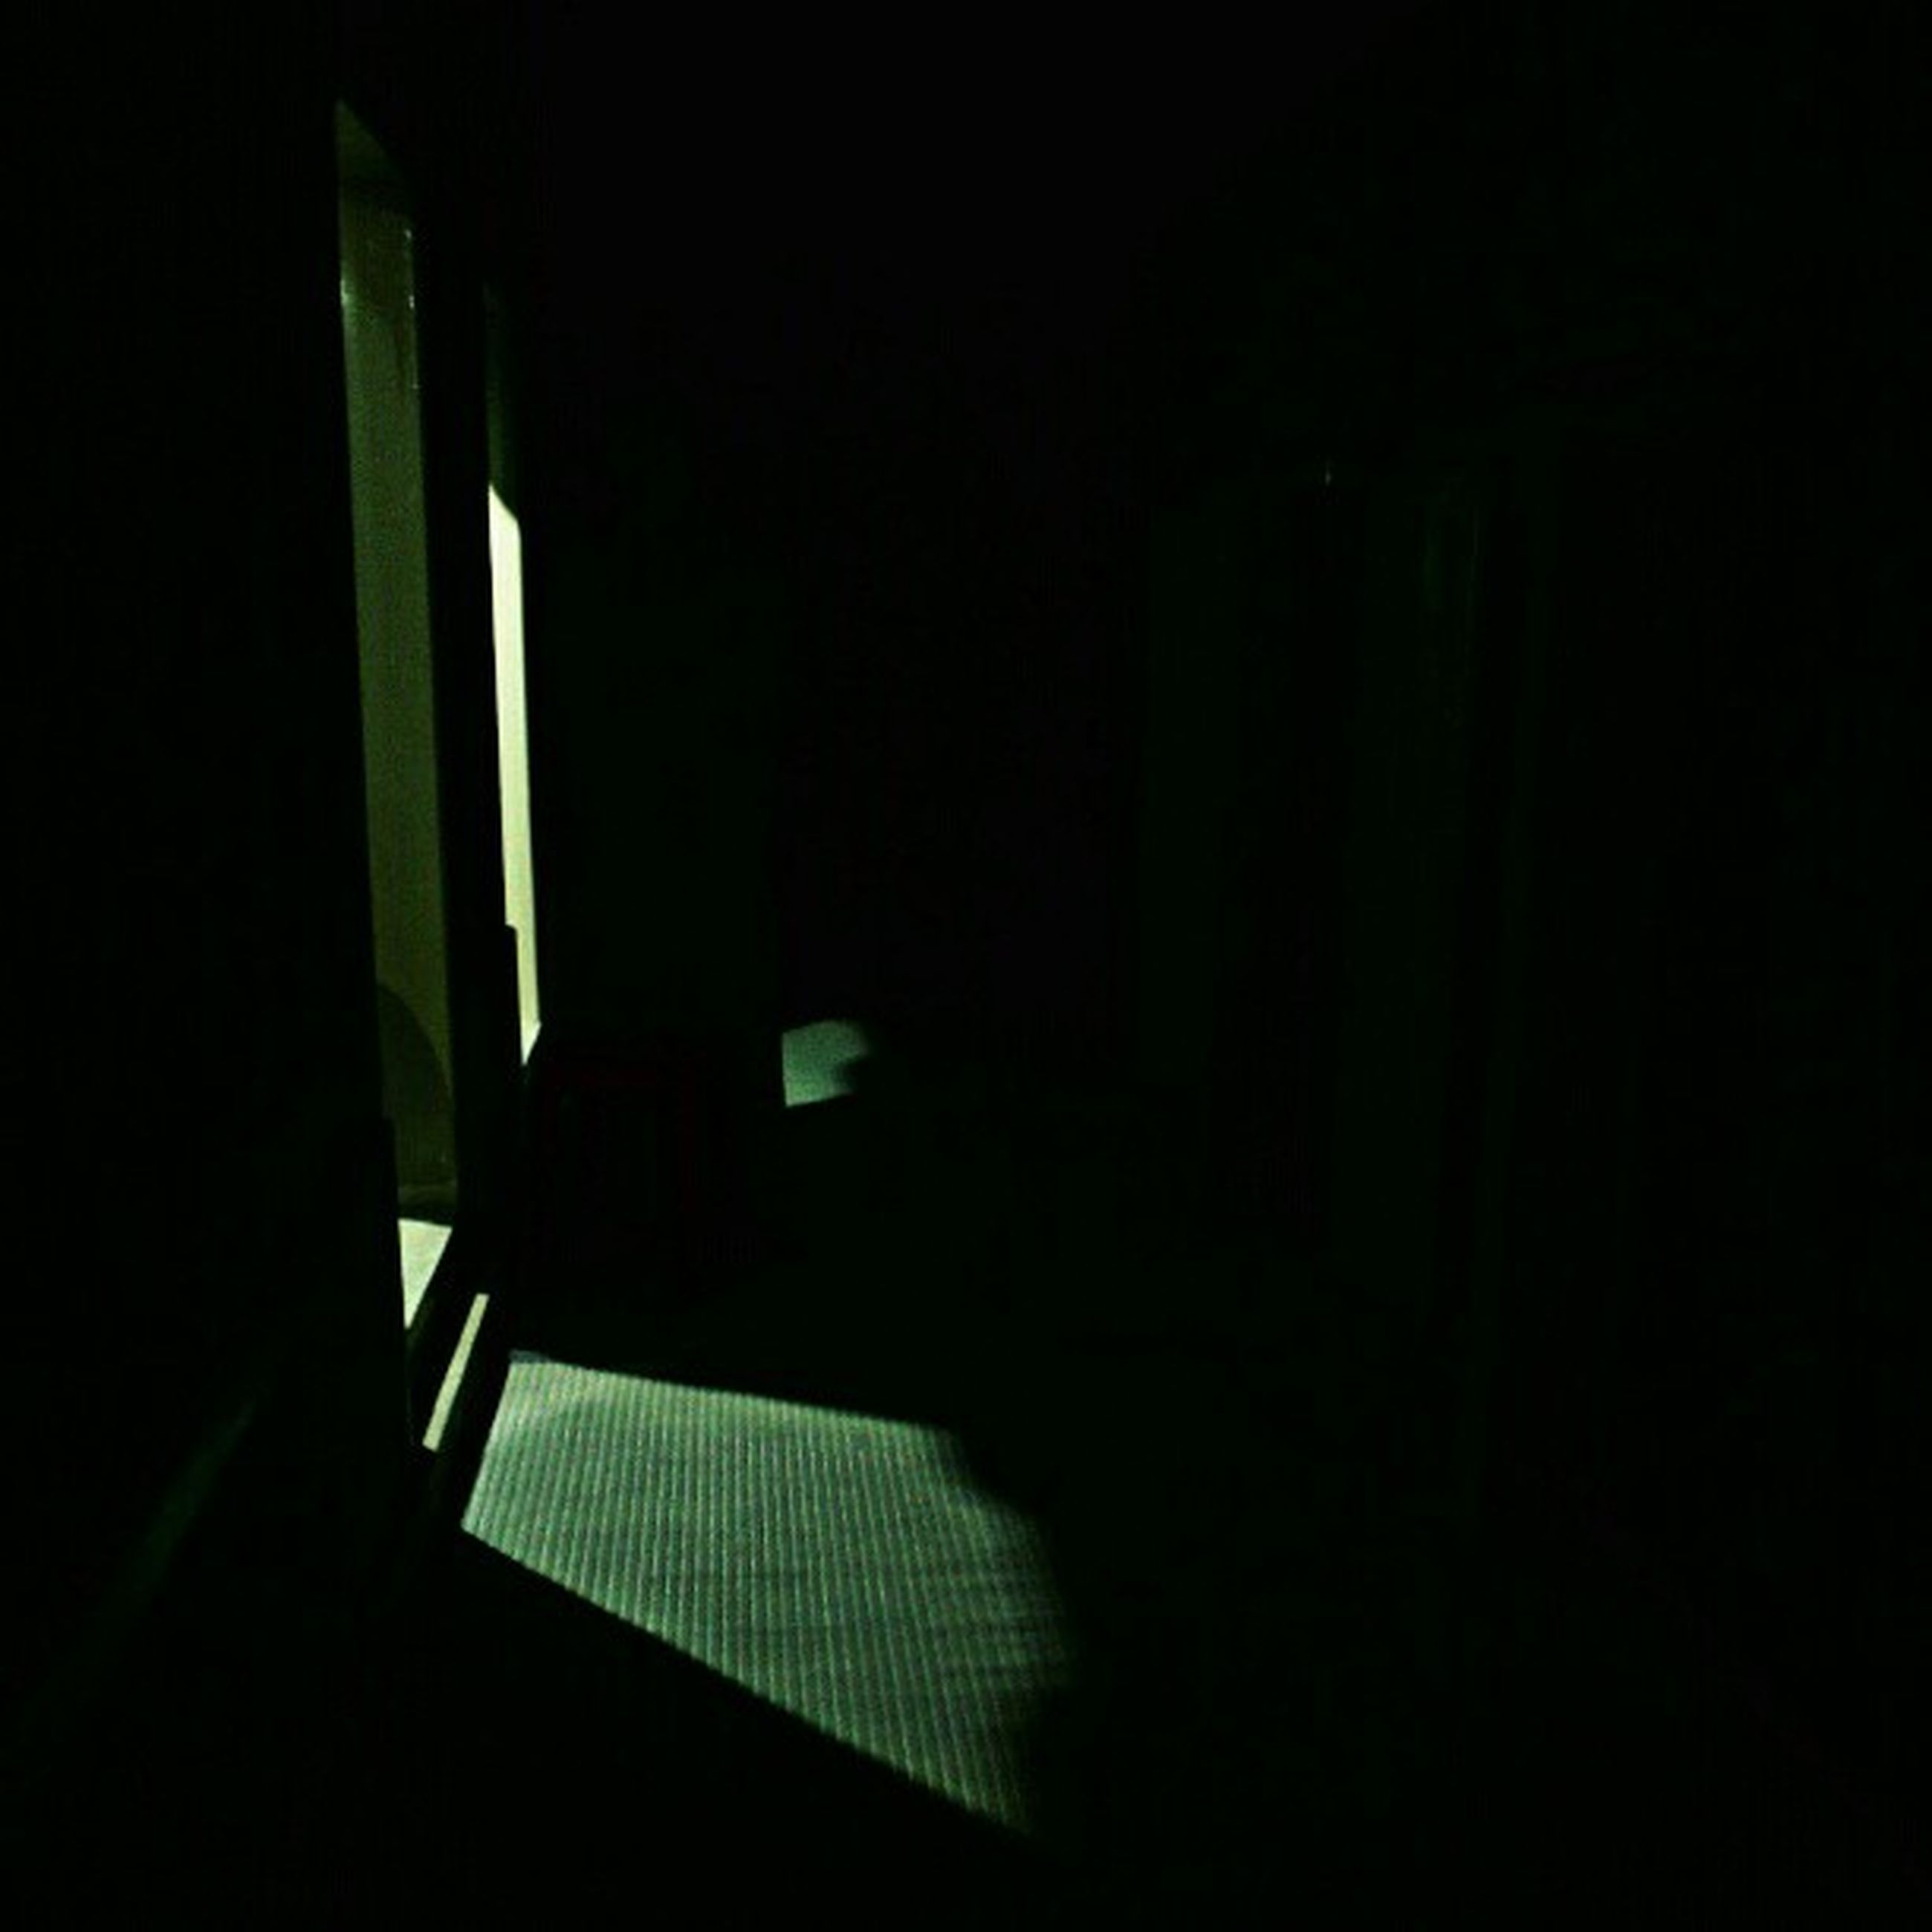 indoors, dark, built structure, copy space, architecture, home interior, darkroom, window, illuminated, house, shadow, wall - building feature, night, no people, light - natural phenomenon, sunlight, wall, room, absence, darkness